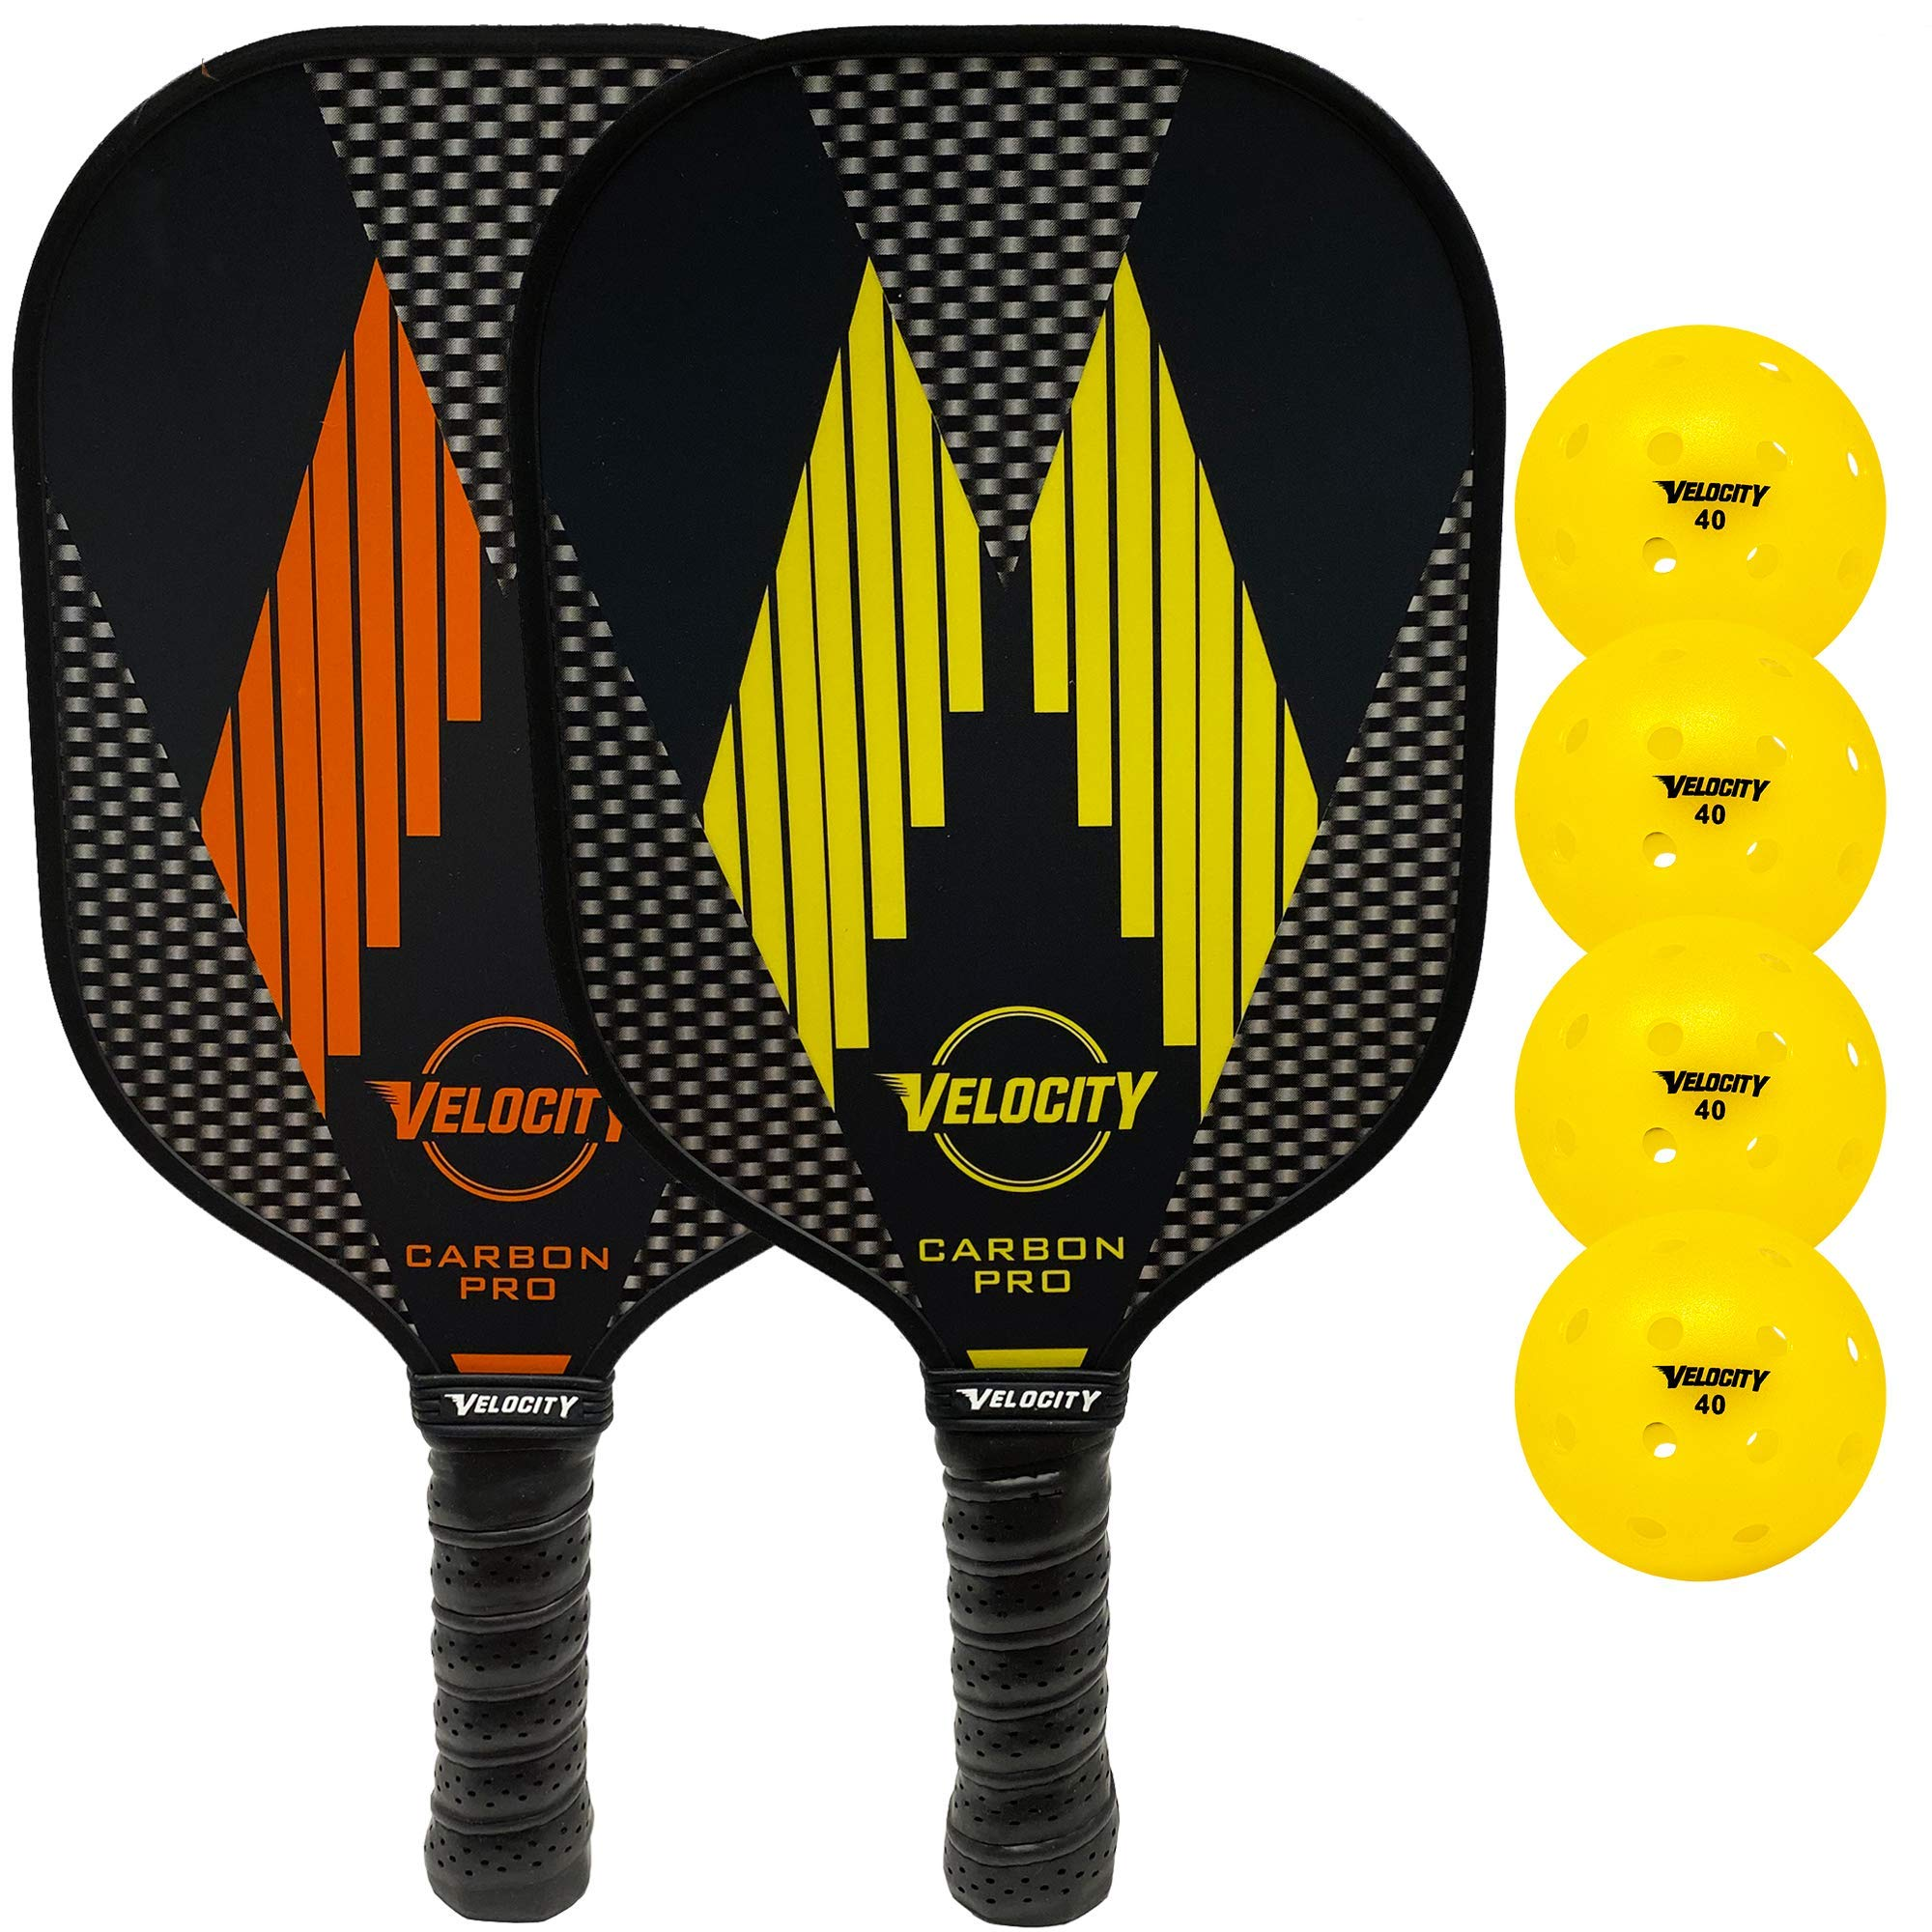 Velocity Carbon Graphite Paddle s : Sizes: 1 2 & 4 Pad -PSS3